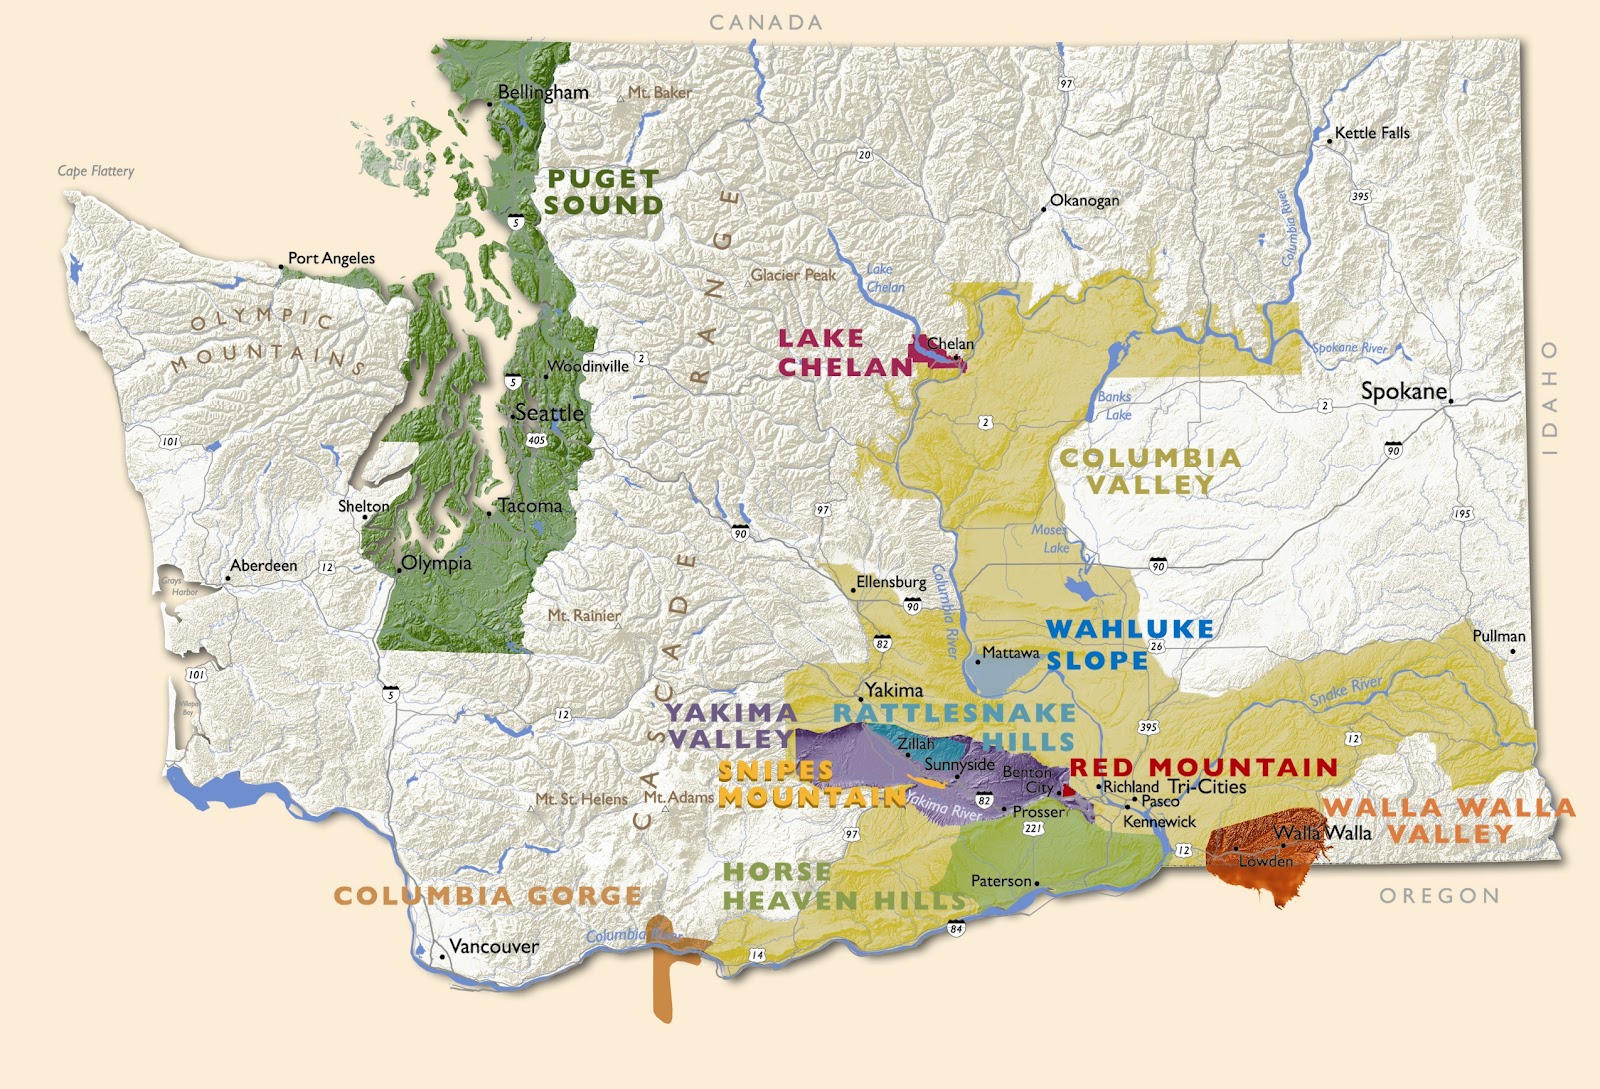 woodinville wineries map with Washington Wine Regions on Pugetloddnmap besides Woodinville Wine Countrys Go To Dinner Hack Tuesday Recipe And Wine Pairing besides Locals Guide To The Best Woodinville Wineries together with Aerial View Over Wahluke Slope Ava Washington likewise Washington Wines Next Generation David Rosenthal Makes Chateau Ste Michelles Super Popular White Wines.